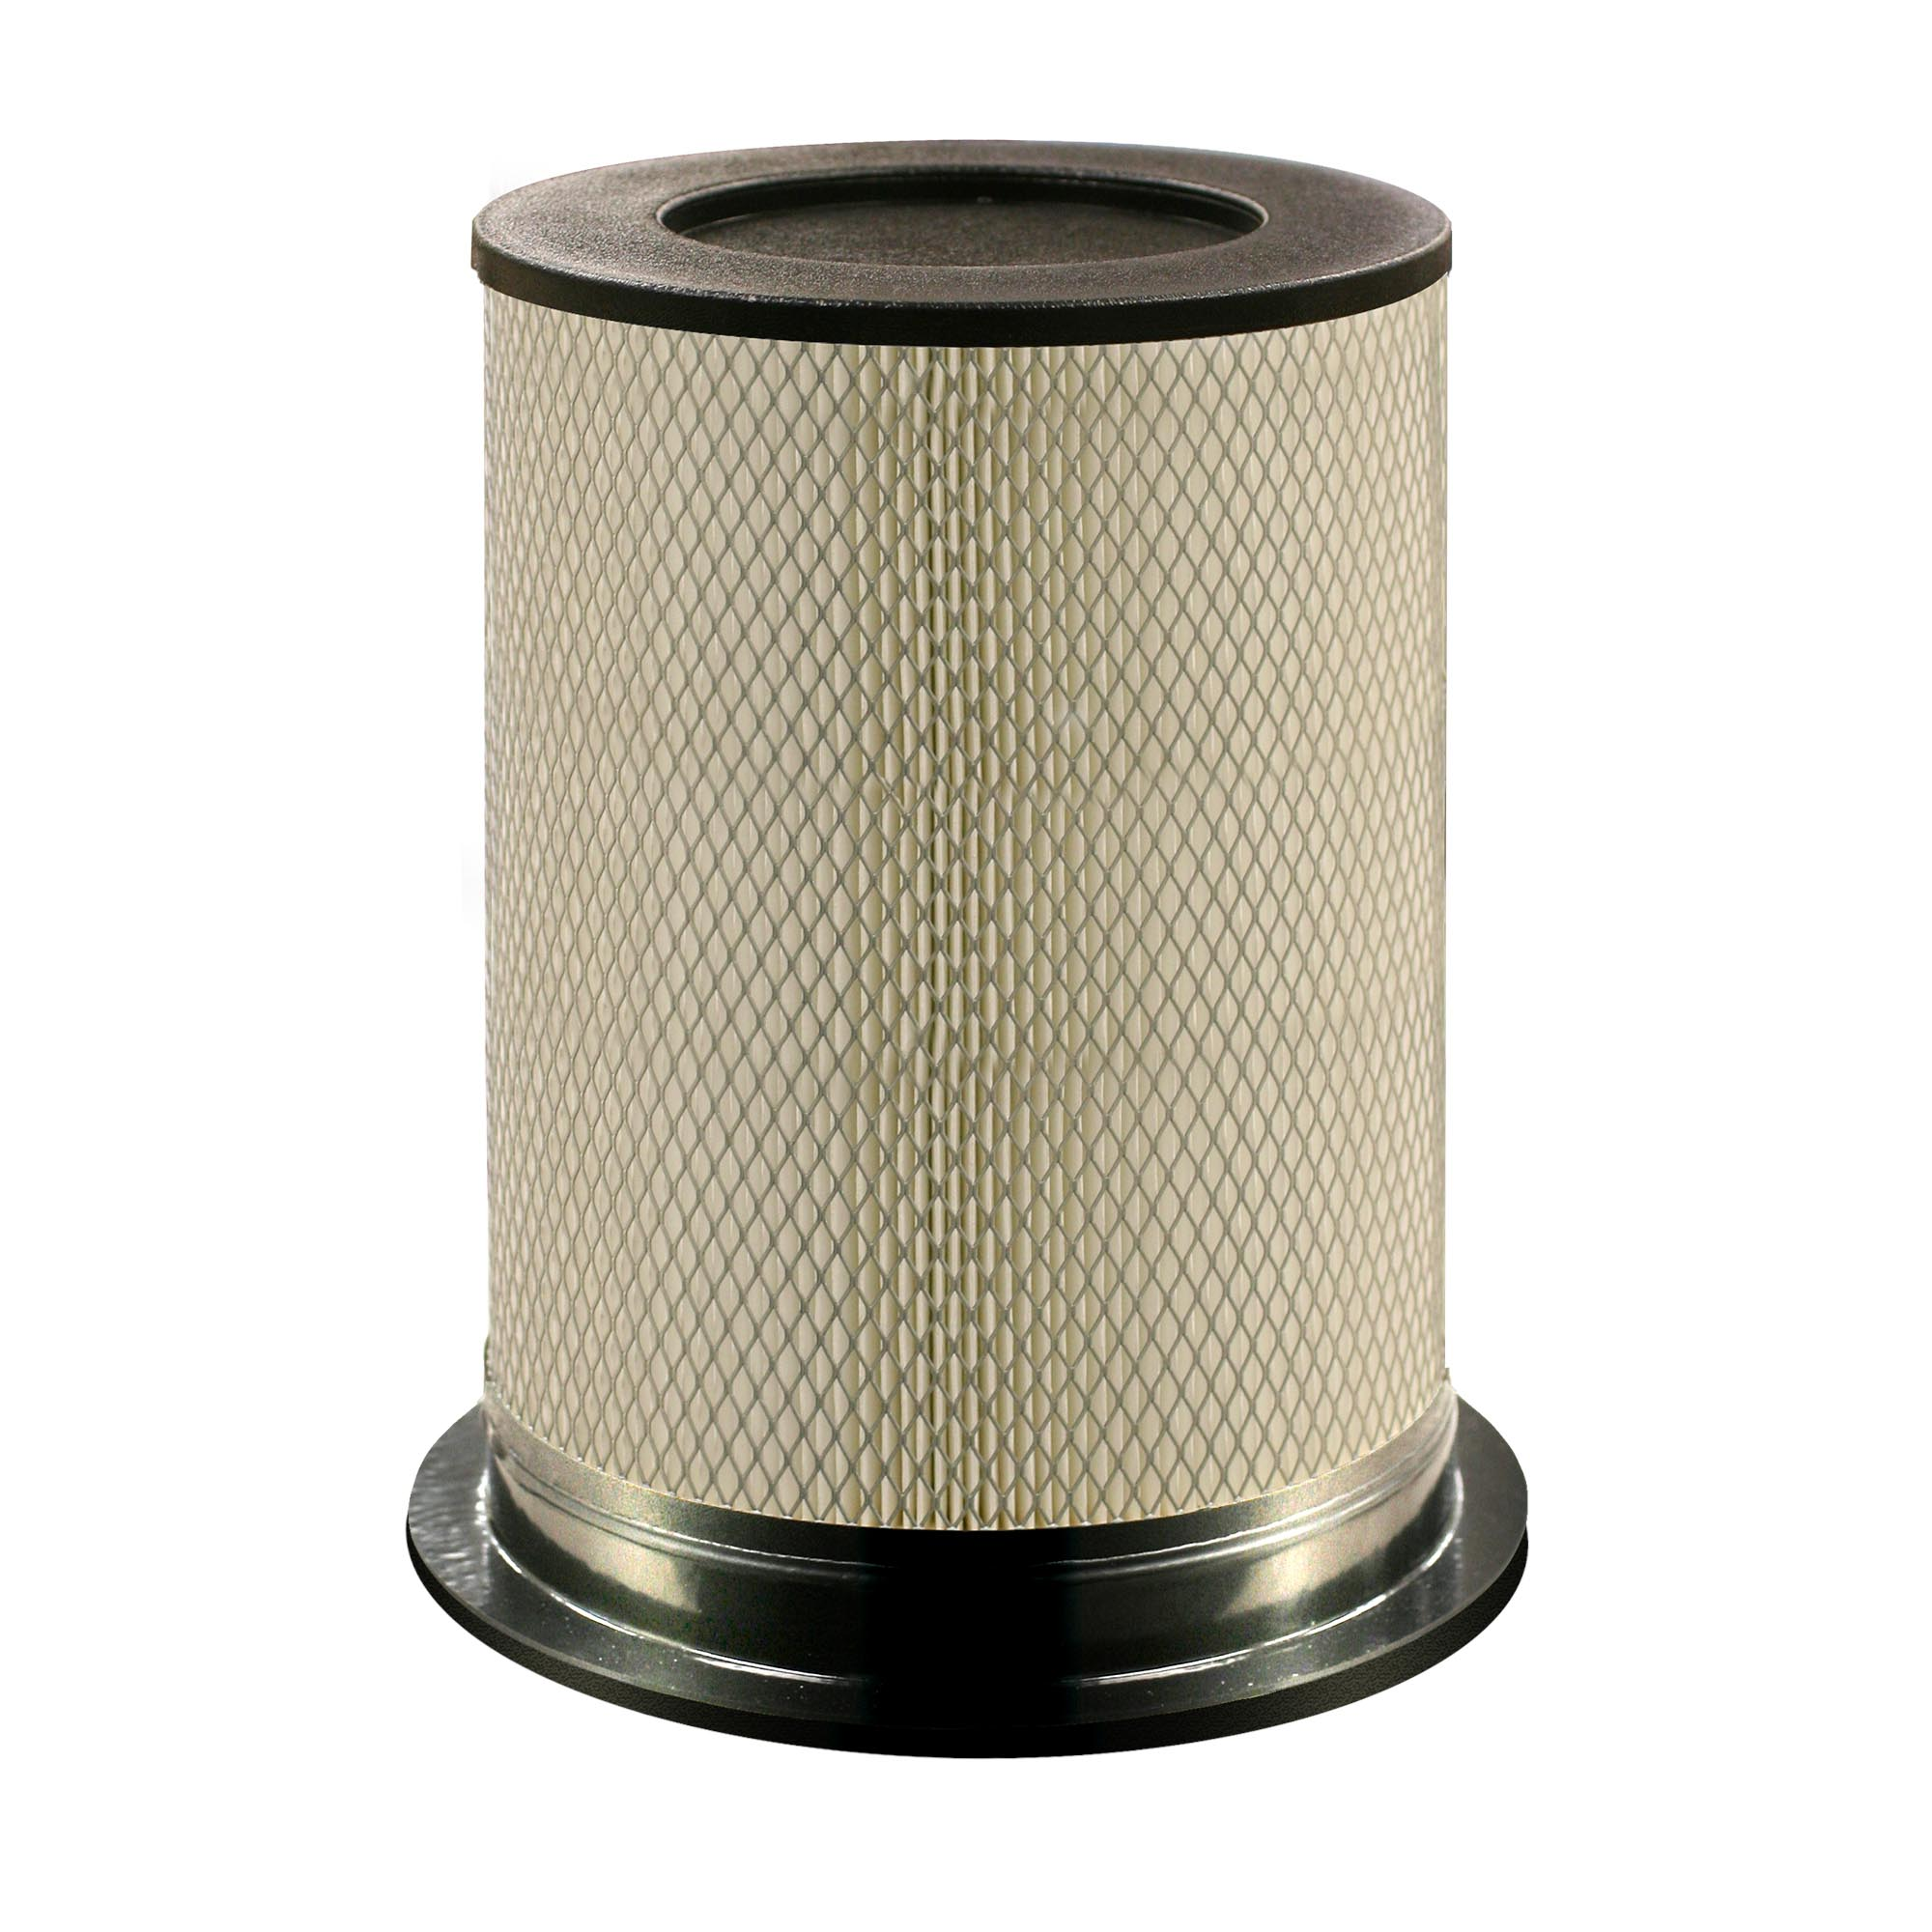 Model 902100 Standard Filter for EasySwitch Wet-Dry Vac